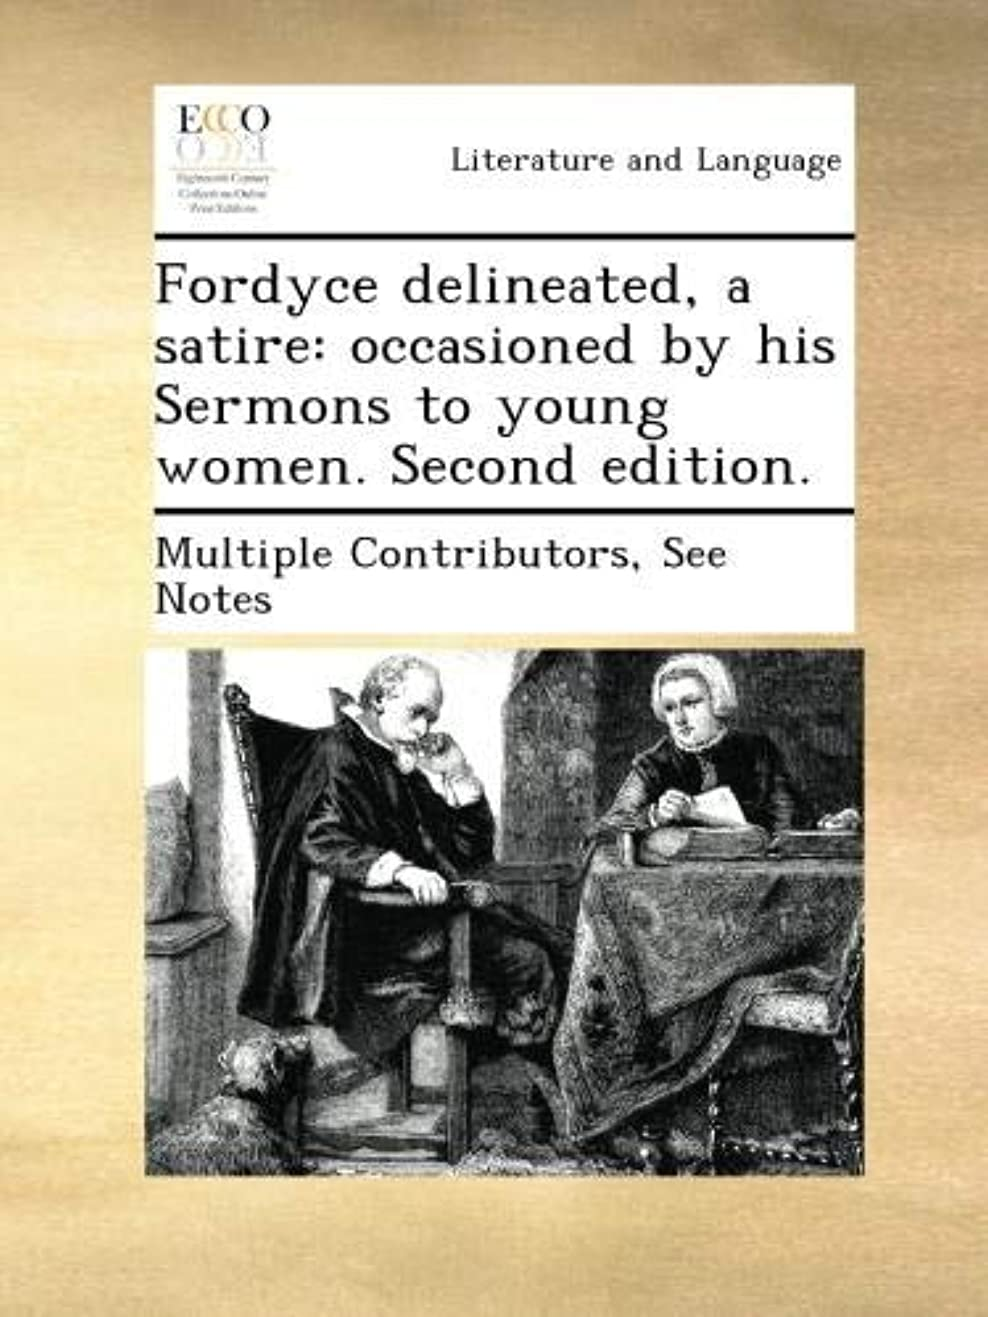 Fordyce delineated, a satire: occasioned by his Sermons to young women. Second edition.